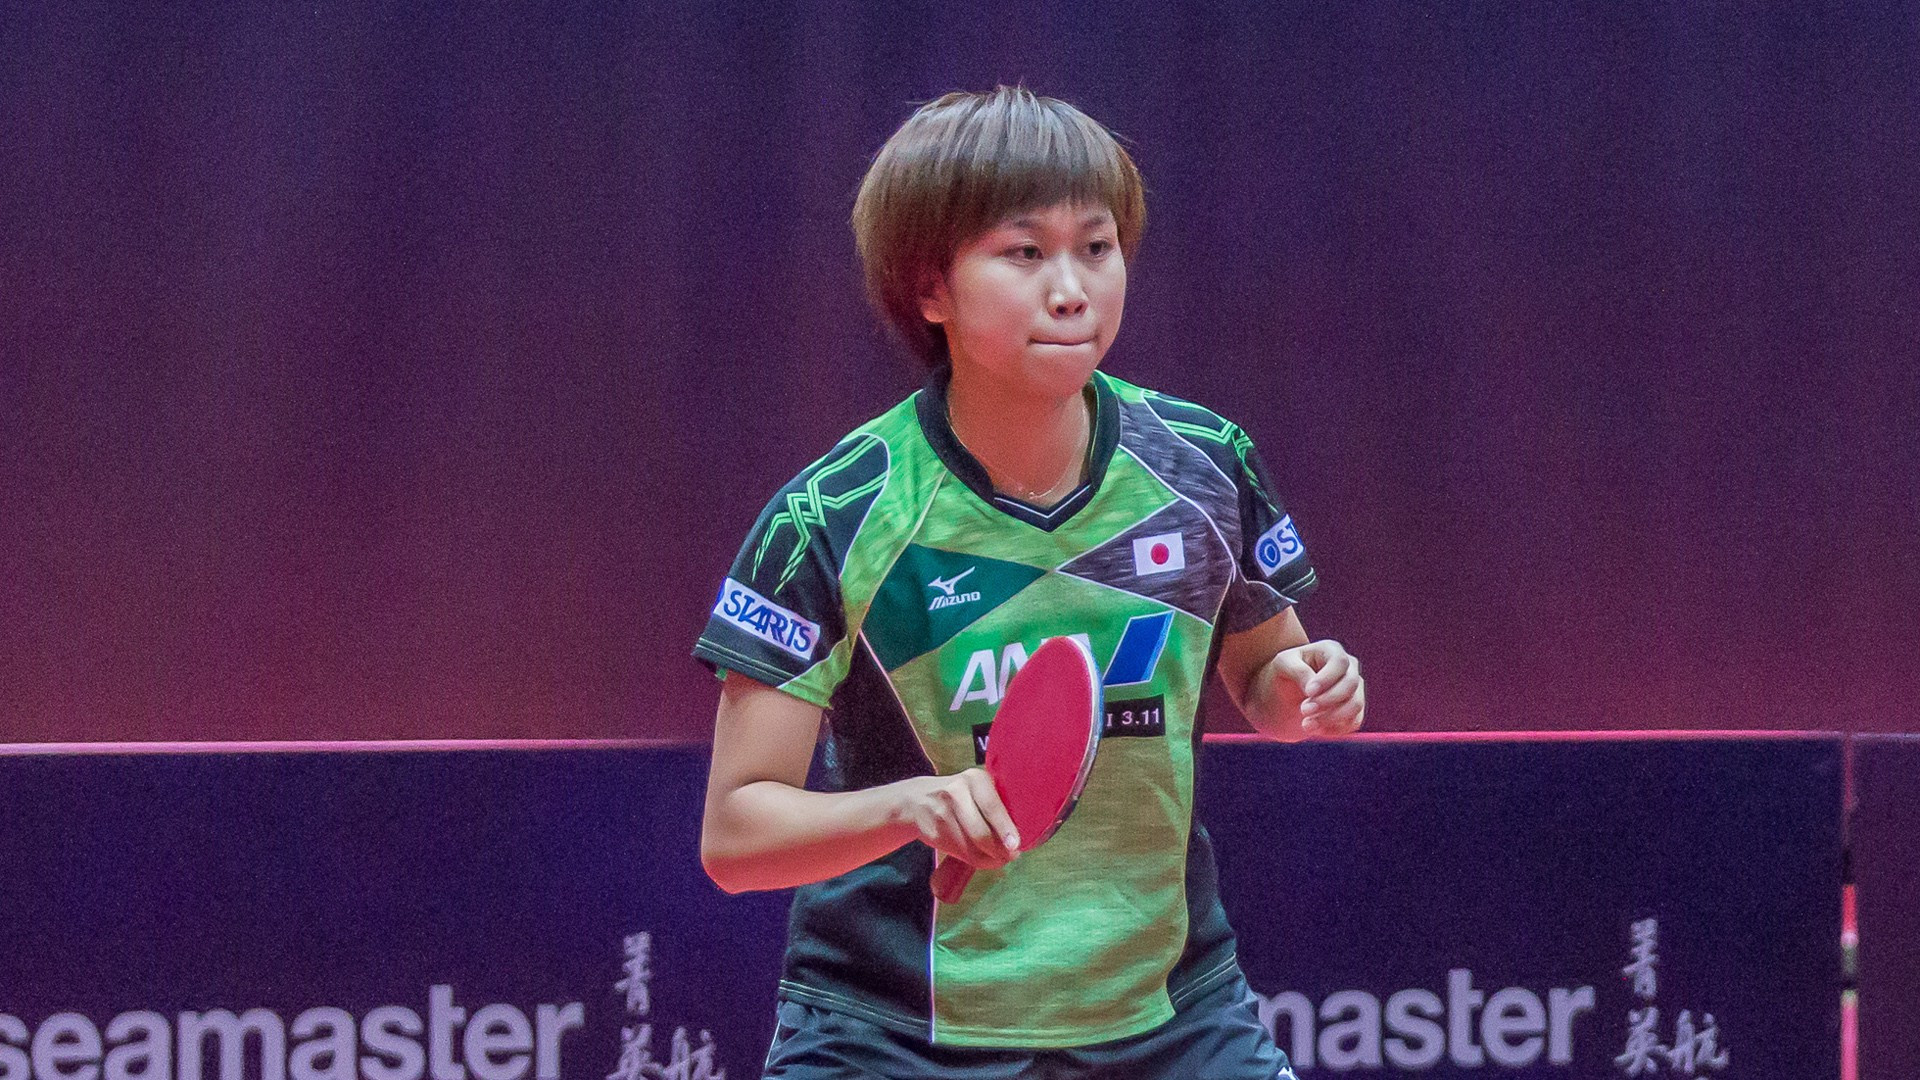 Hitomi Sato of Japan safely progressed in the women's tournament ©Chris Petkov/ITTF